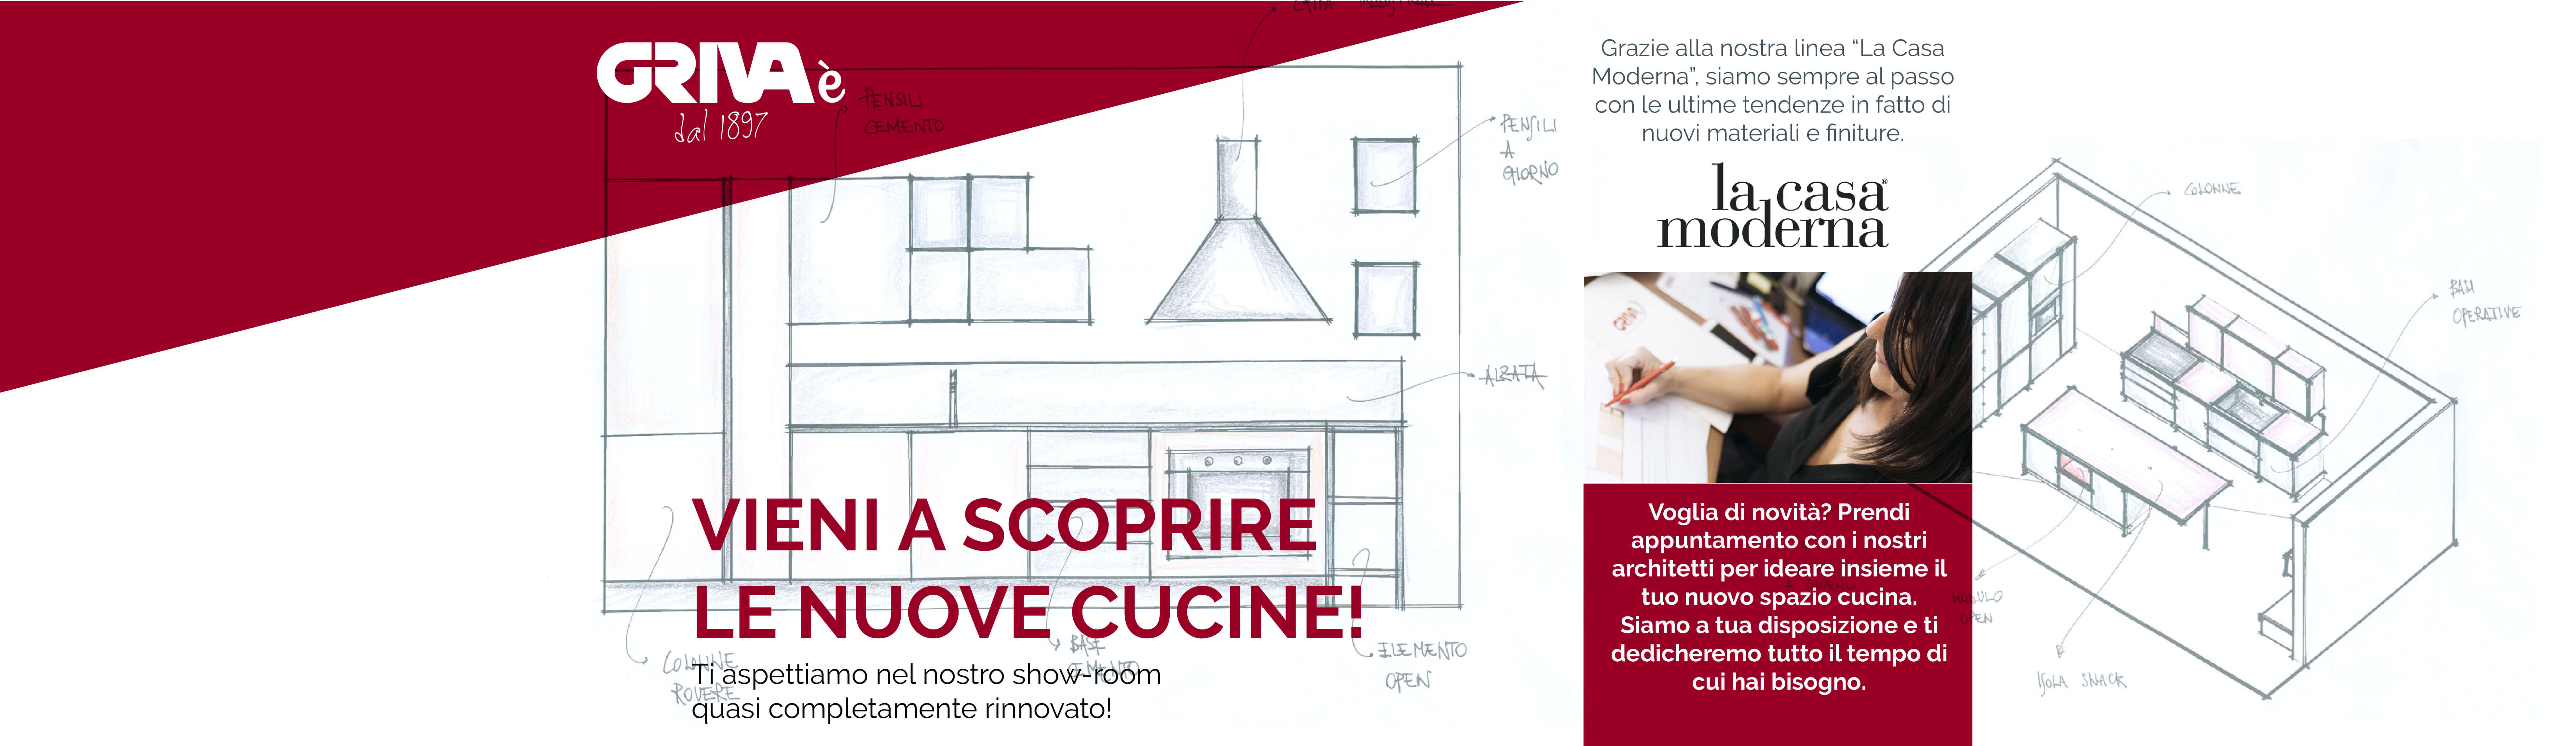 website-Cucine-1